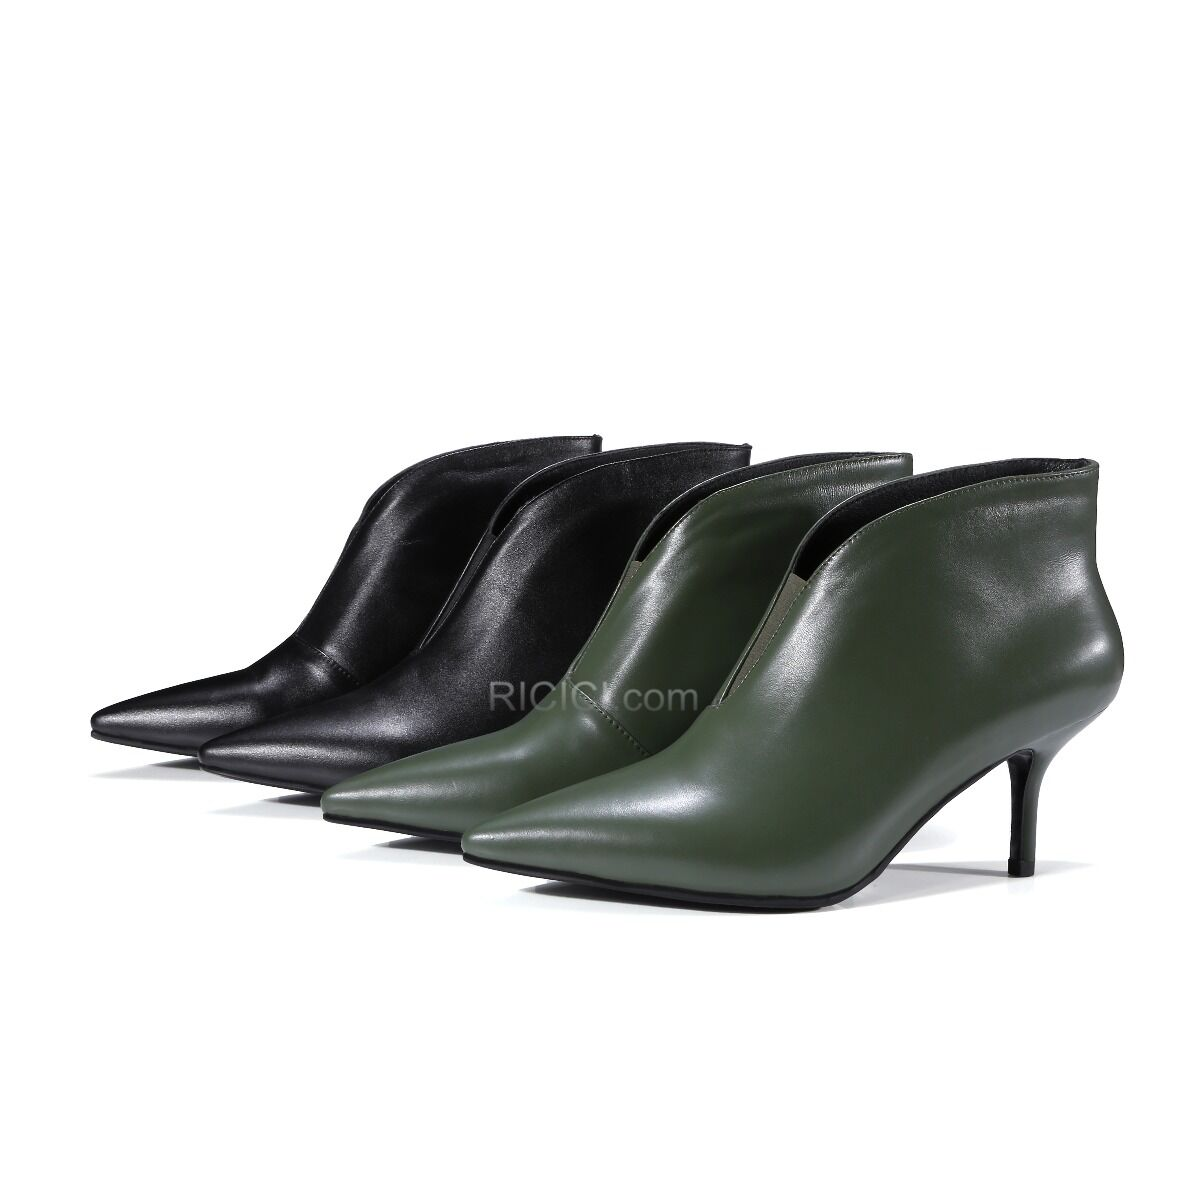 Patent Leather Pointed Toe Boots For